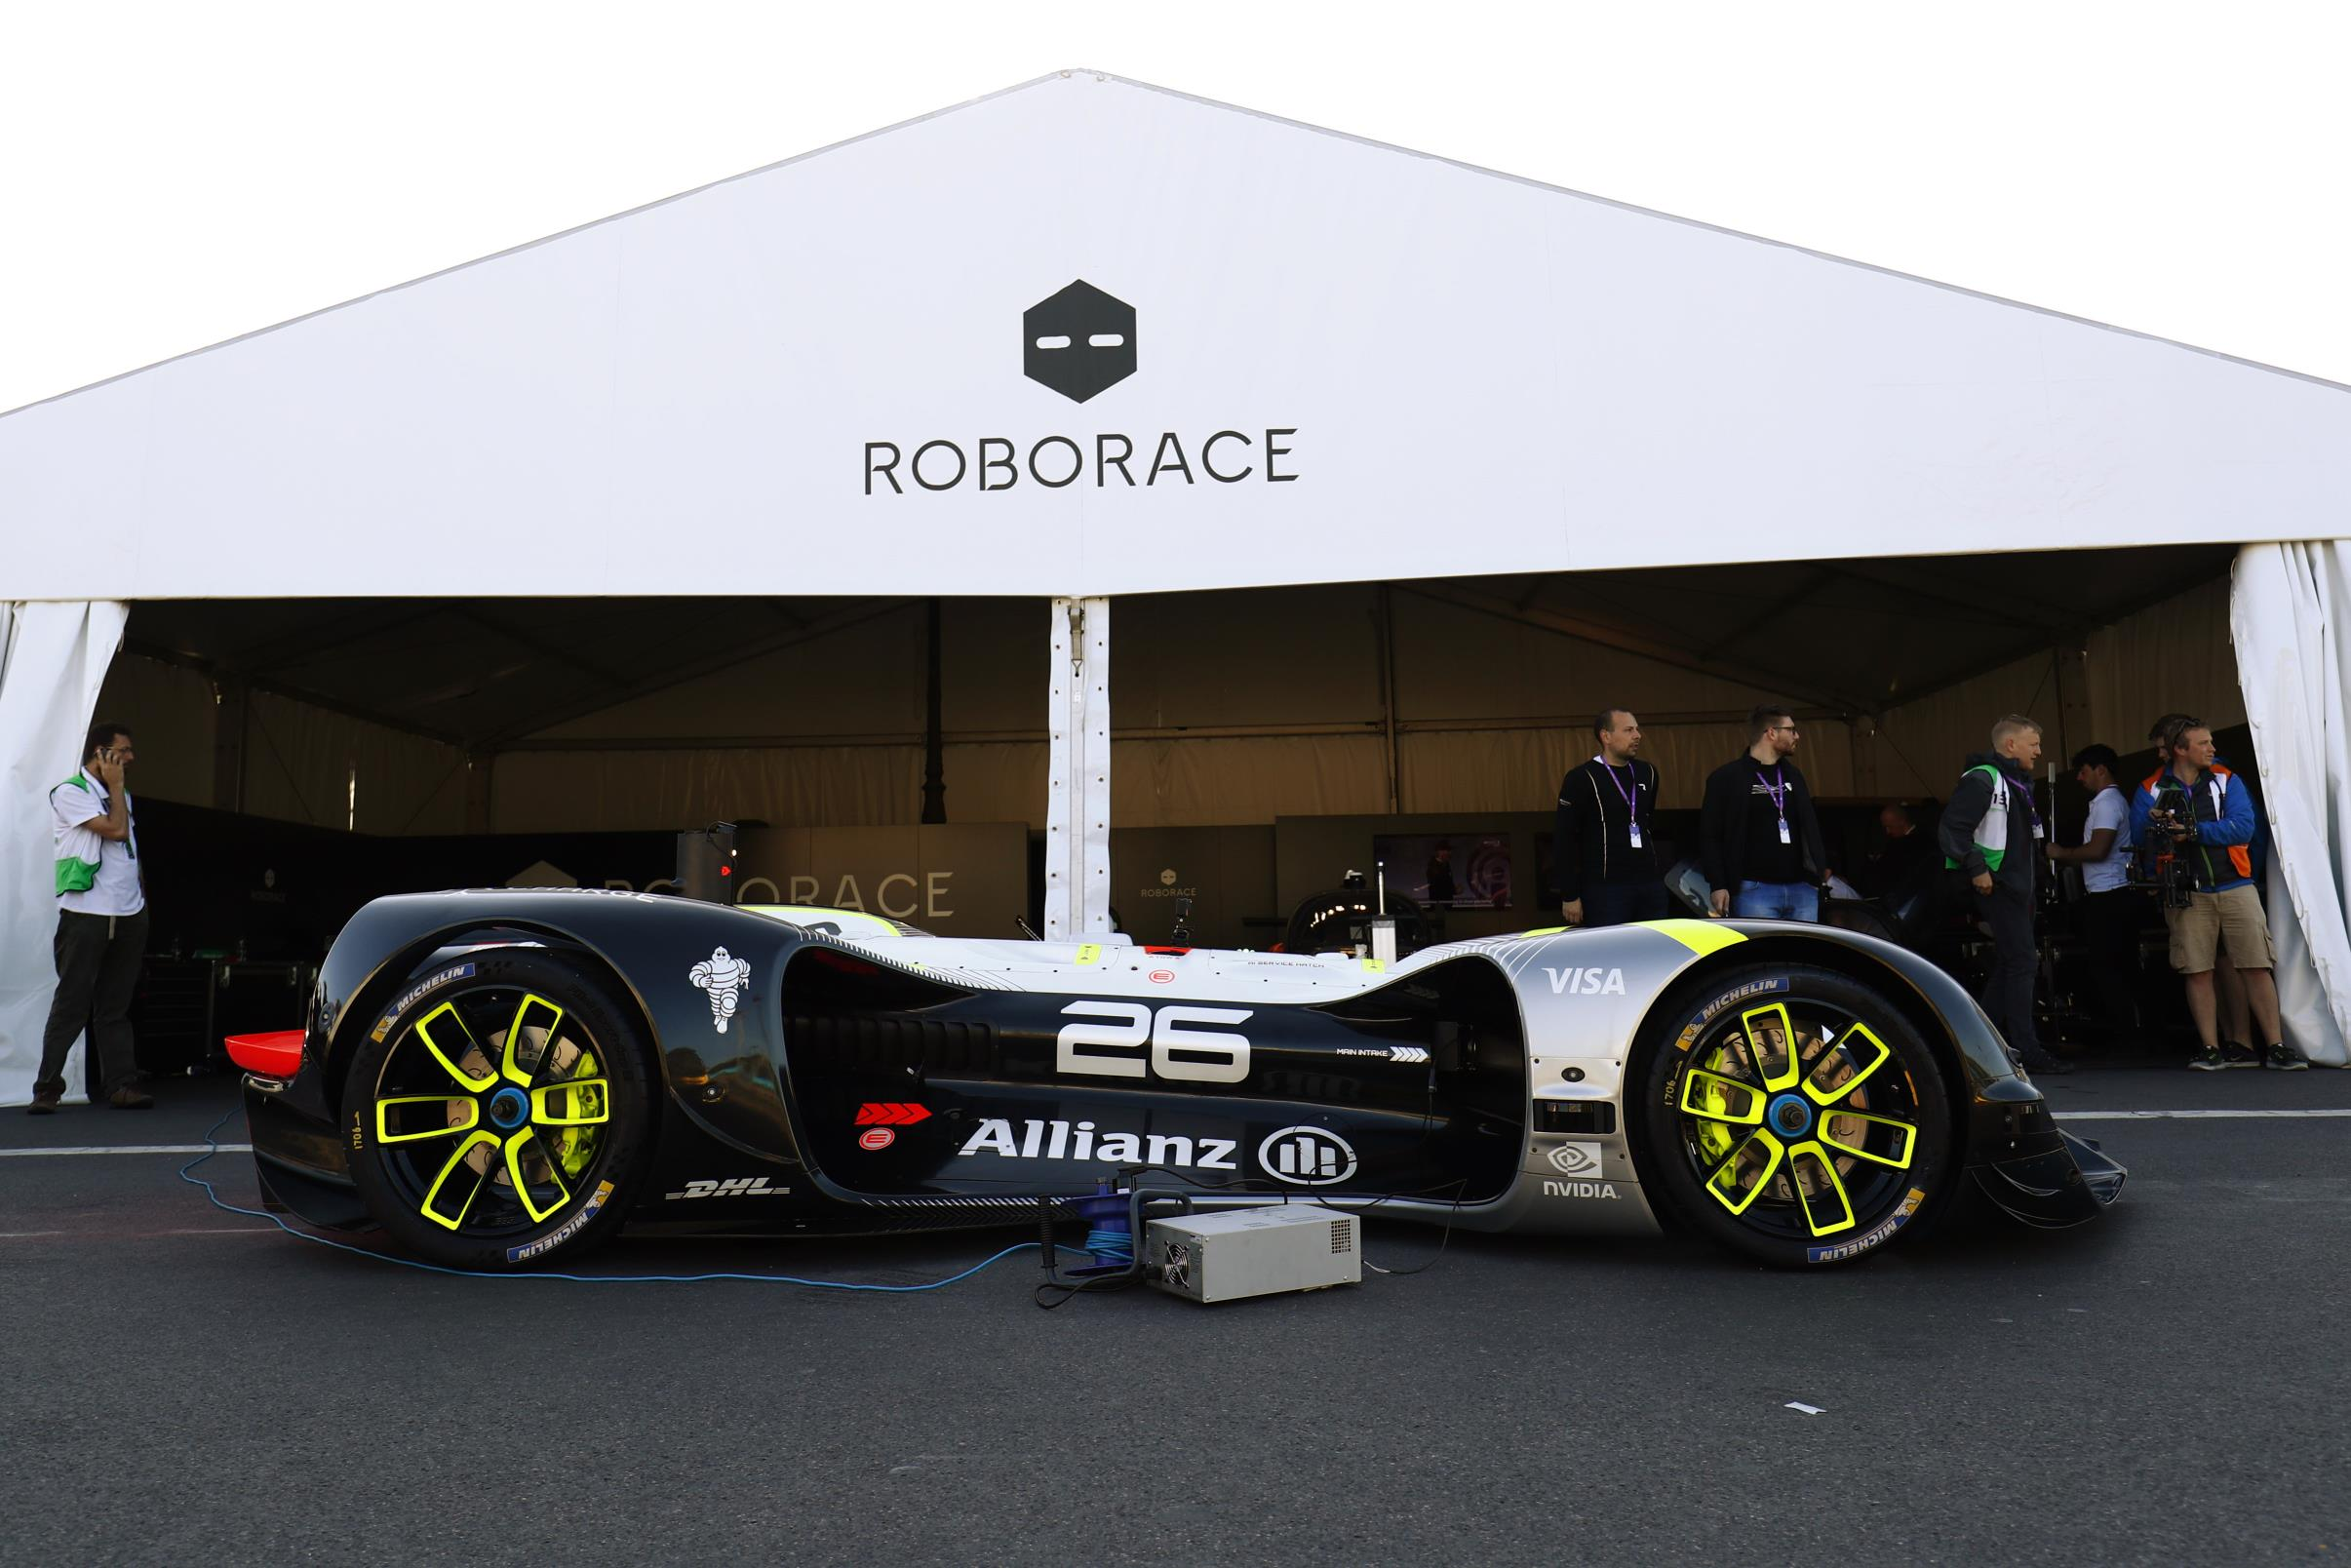 Roborace is a new series for autonomous racing cars - no drivers required!